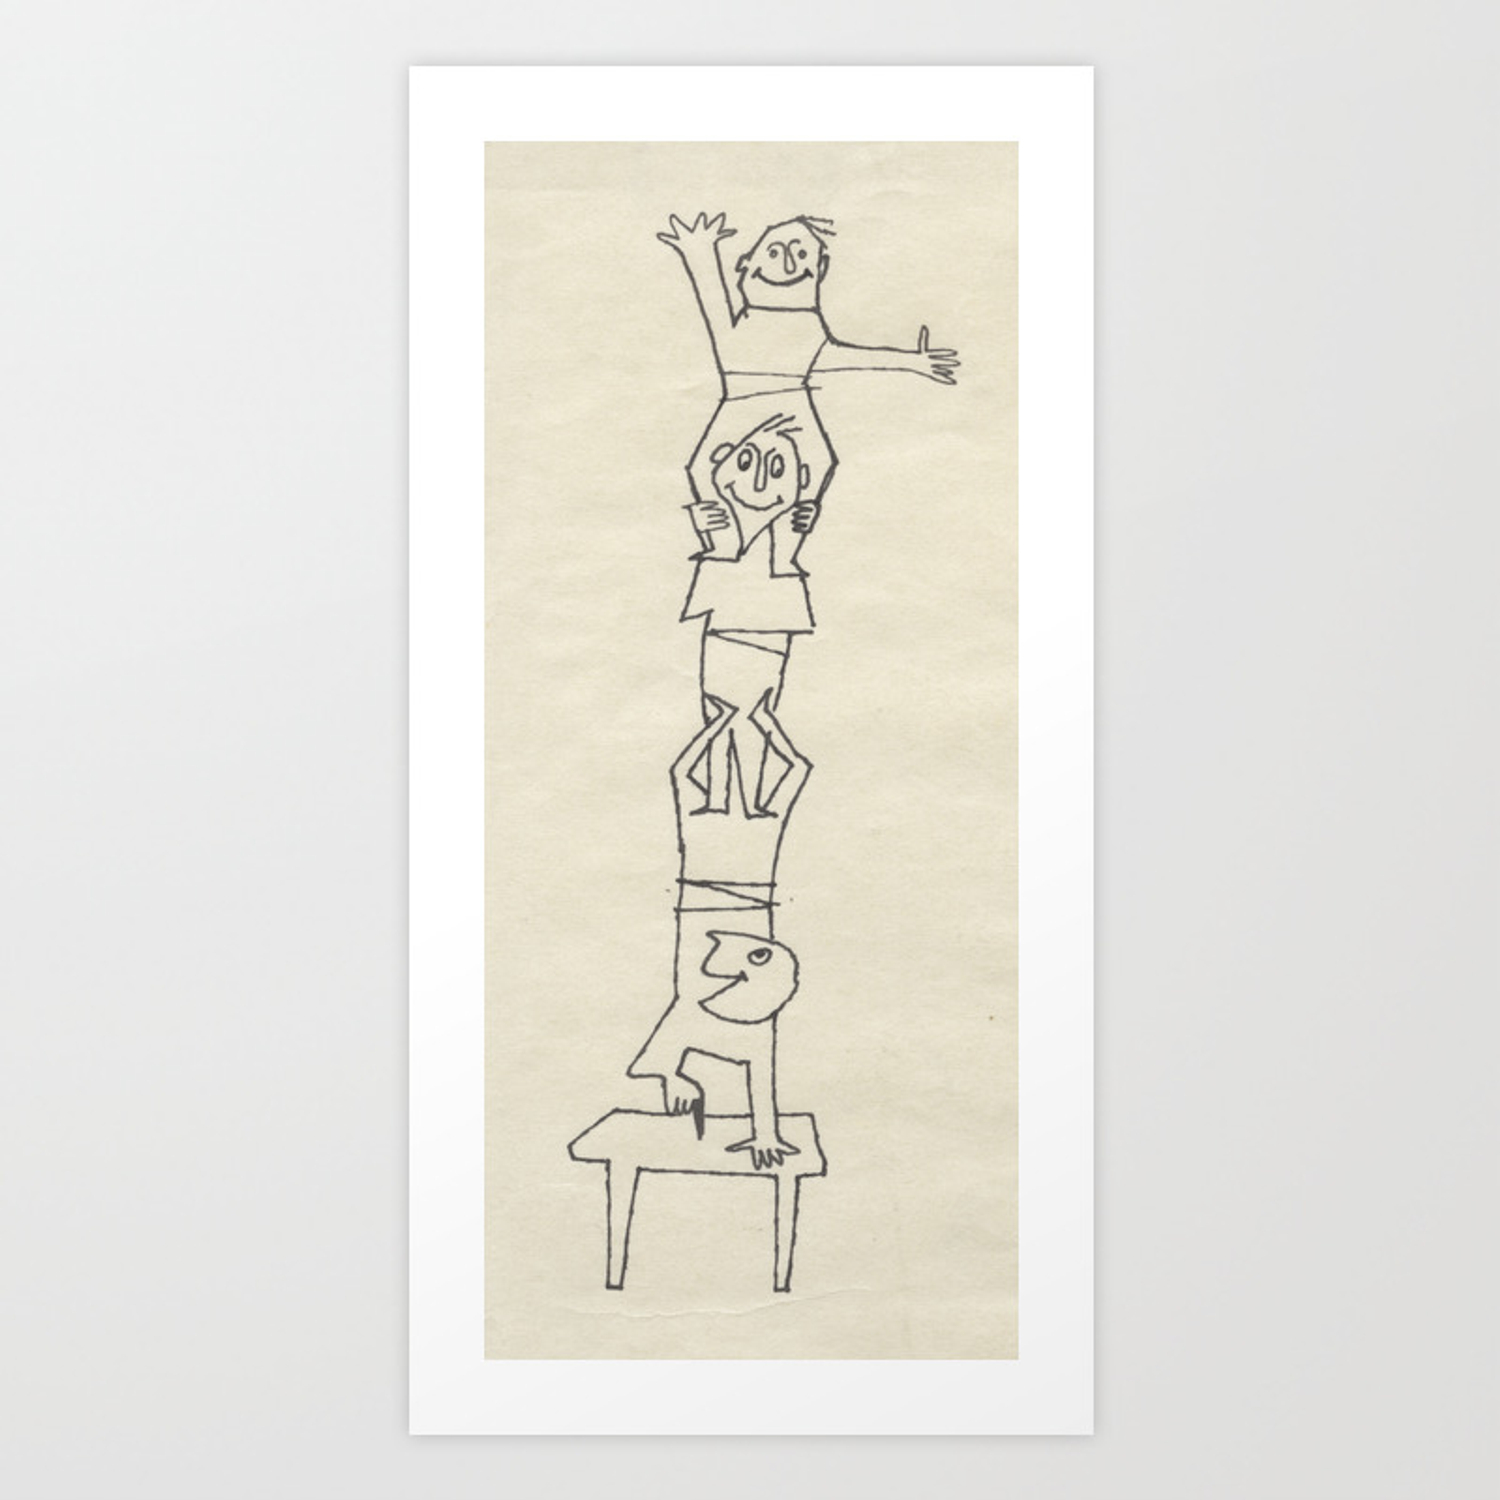 Tremendous Little Folks Climbing Small People In Sketch By D Messenger Art Print Bralicious Painted Fabric Chair Ideas Braliciousco